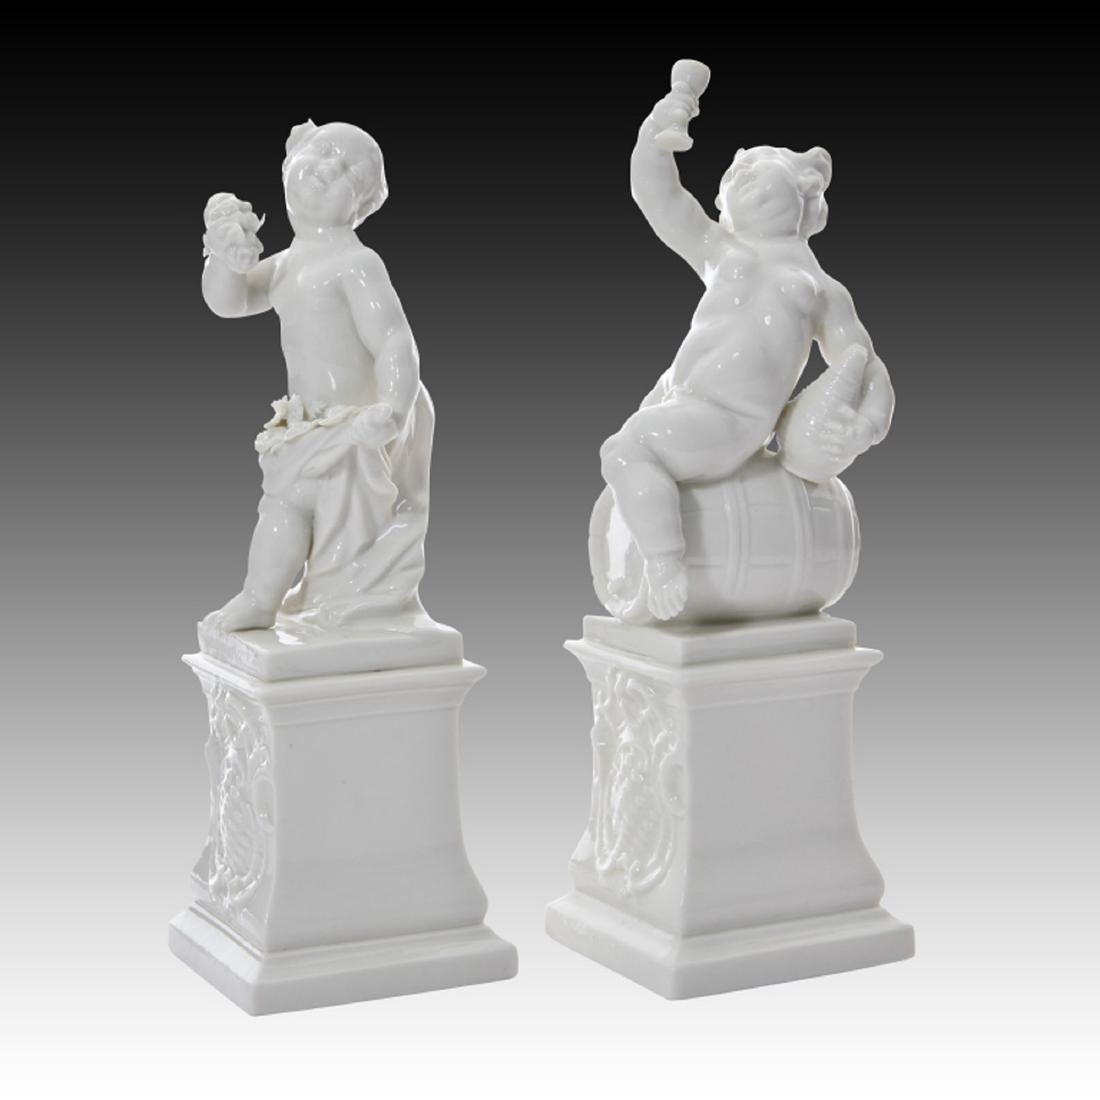 PAIR OF NYMPHENBURG CHERUB PUTTI FIGURINES